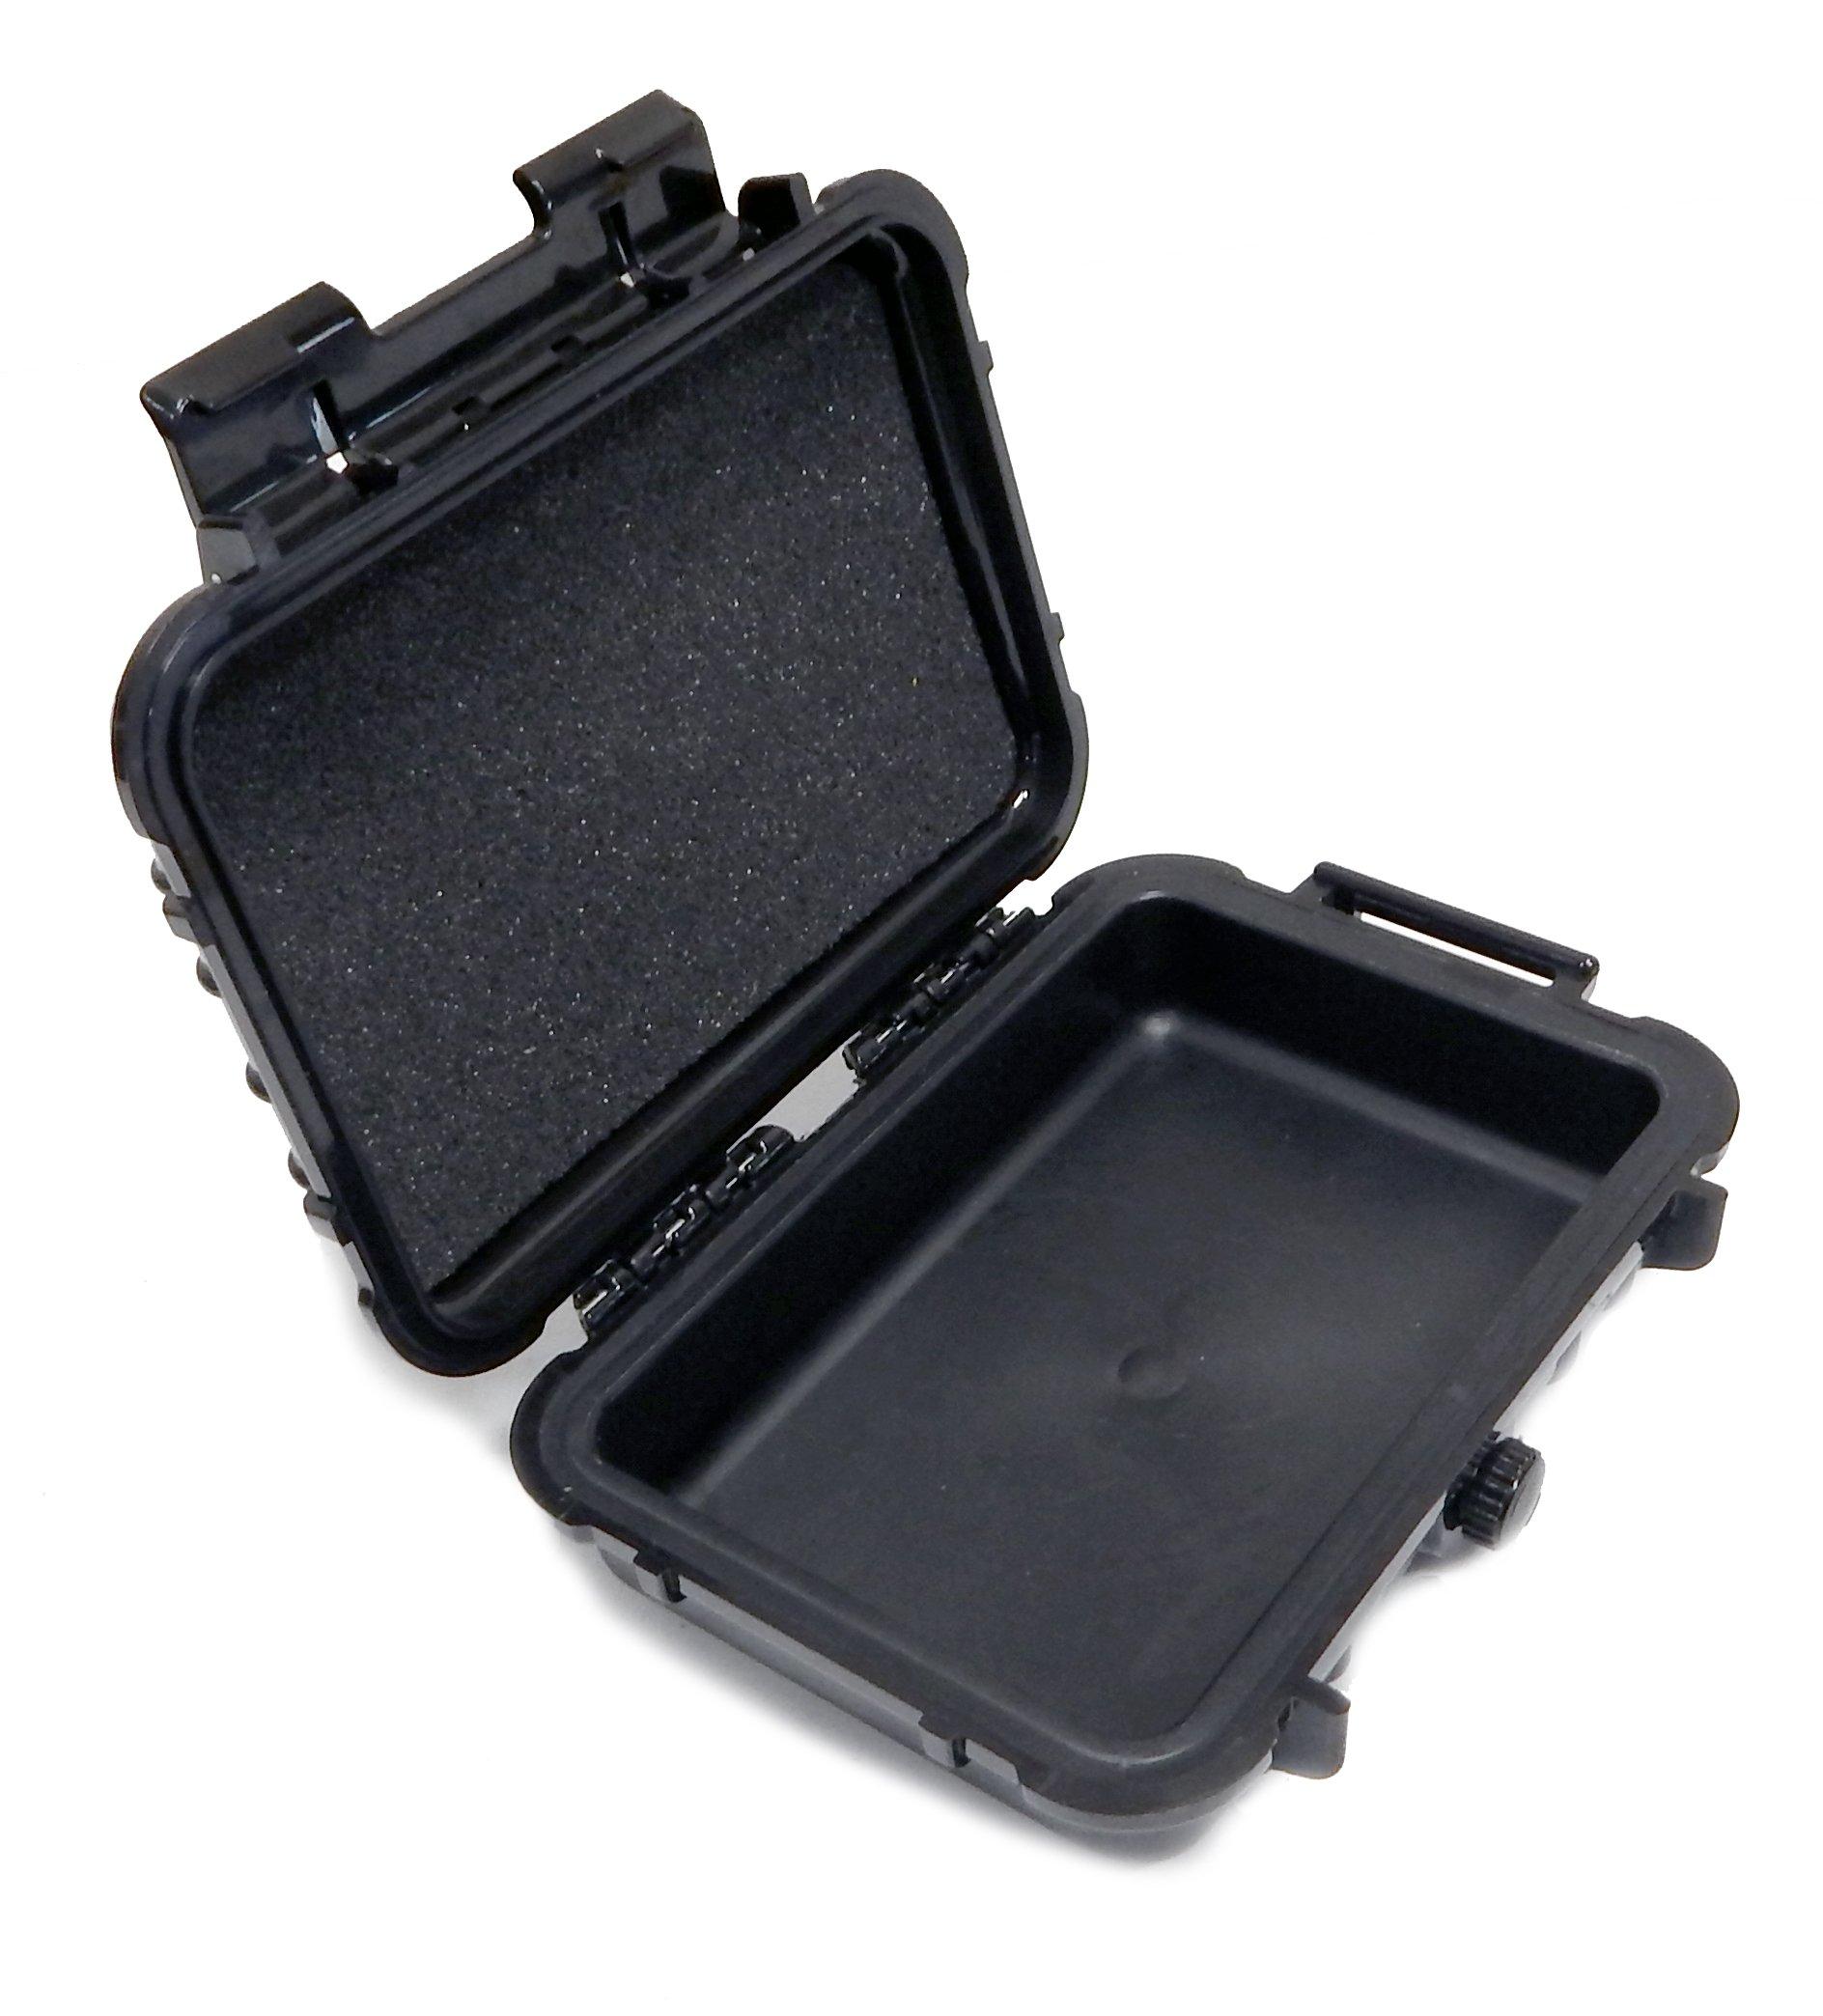 CASEMATIX Rugged Portable Printer Case Compatible with Polaroid Mint Printer and Polaroid Mint Pocket Printer Paper - Includes Waterproof CASE ONLY by CASEMATIX (Image #1)